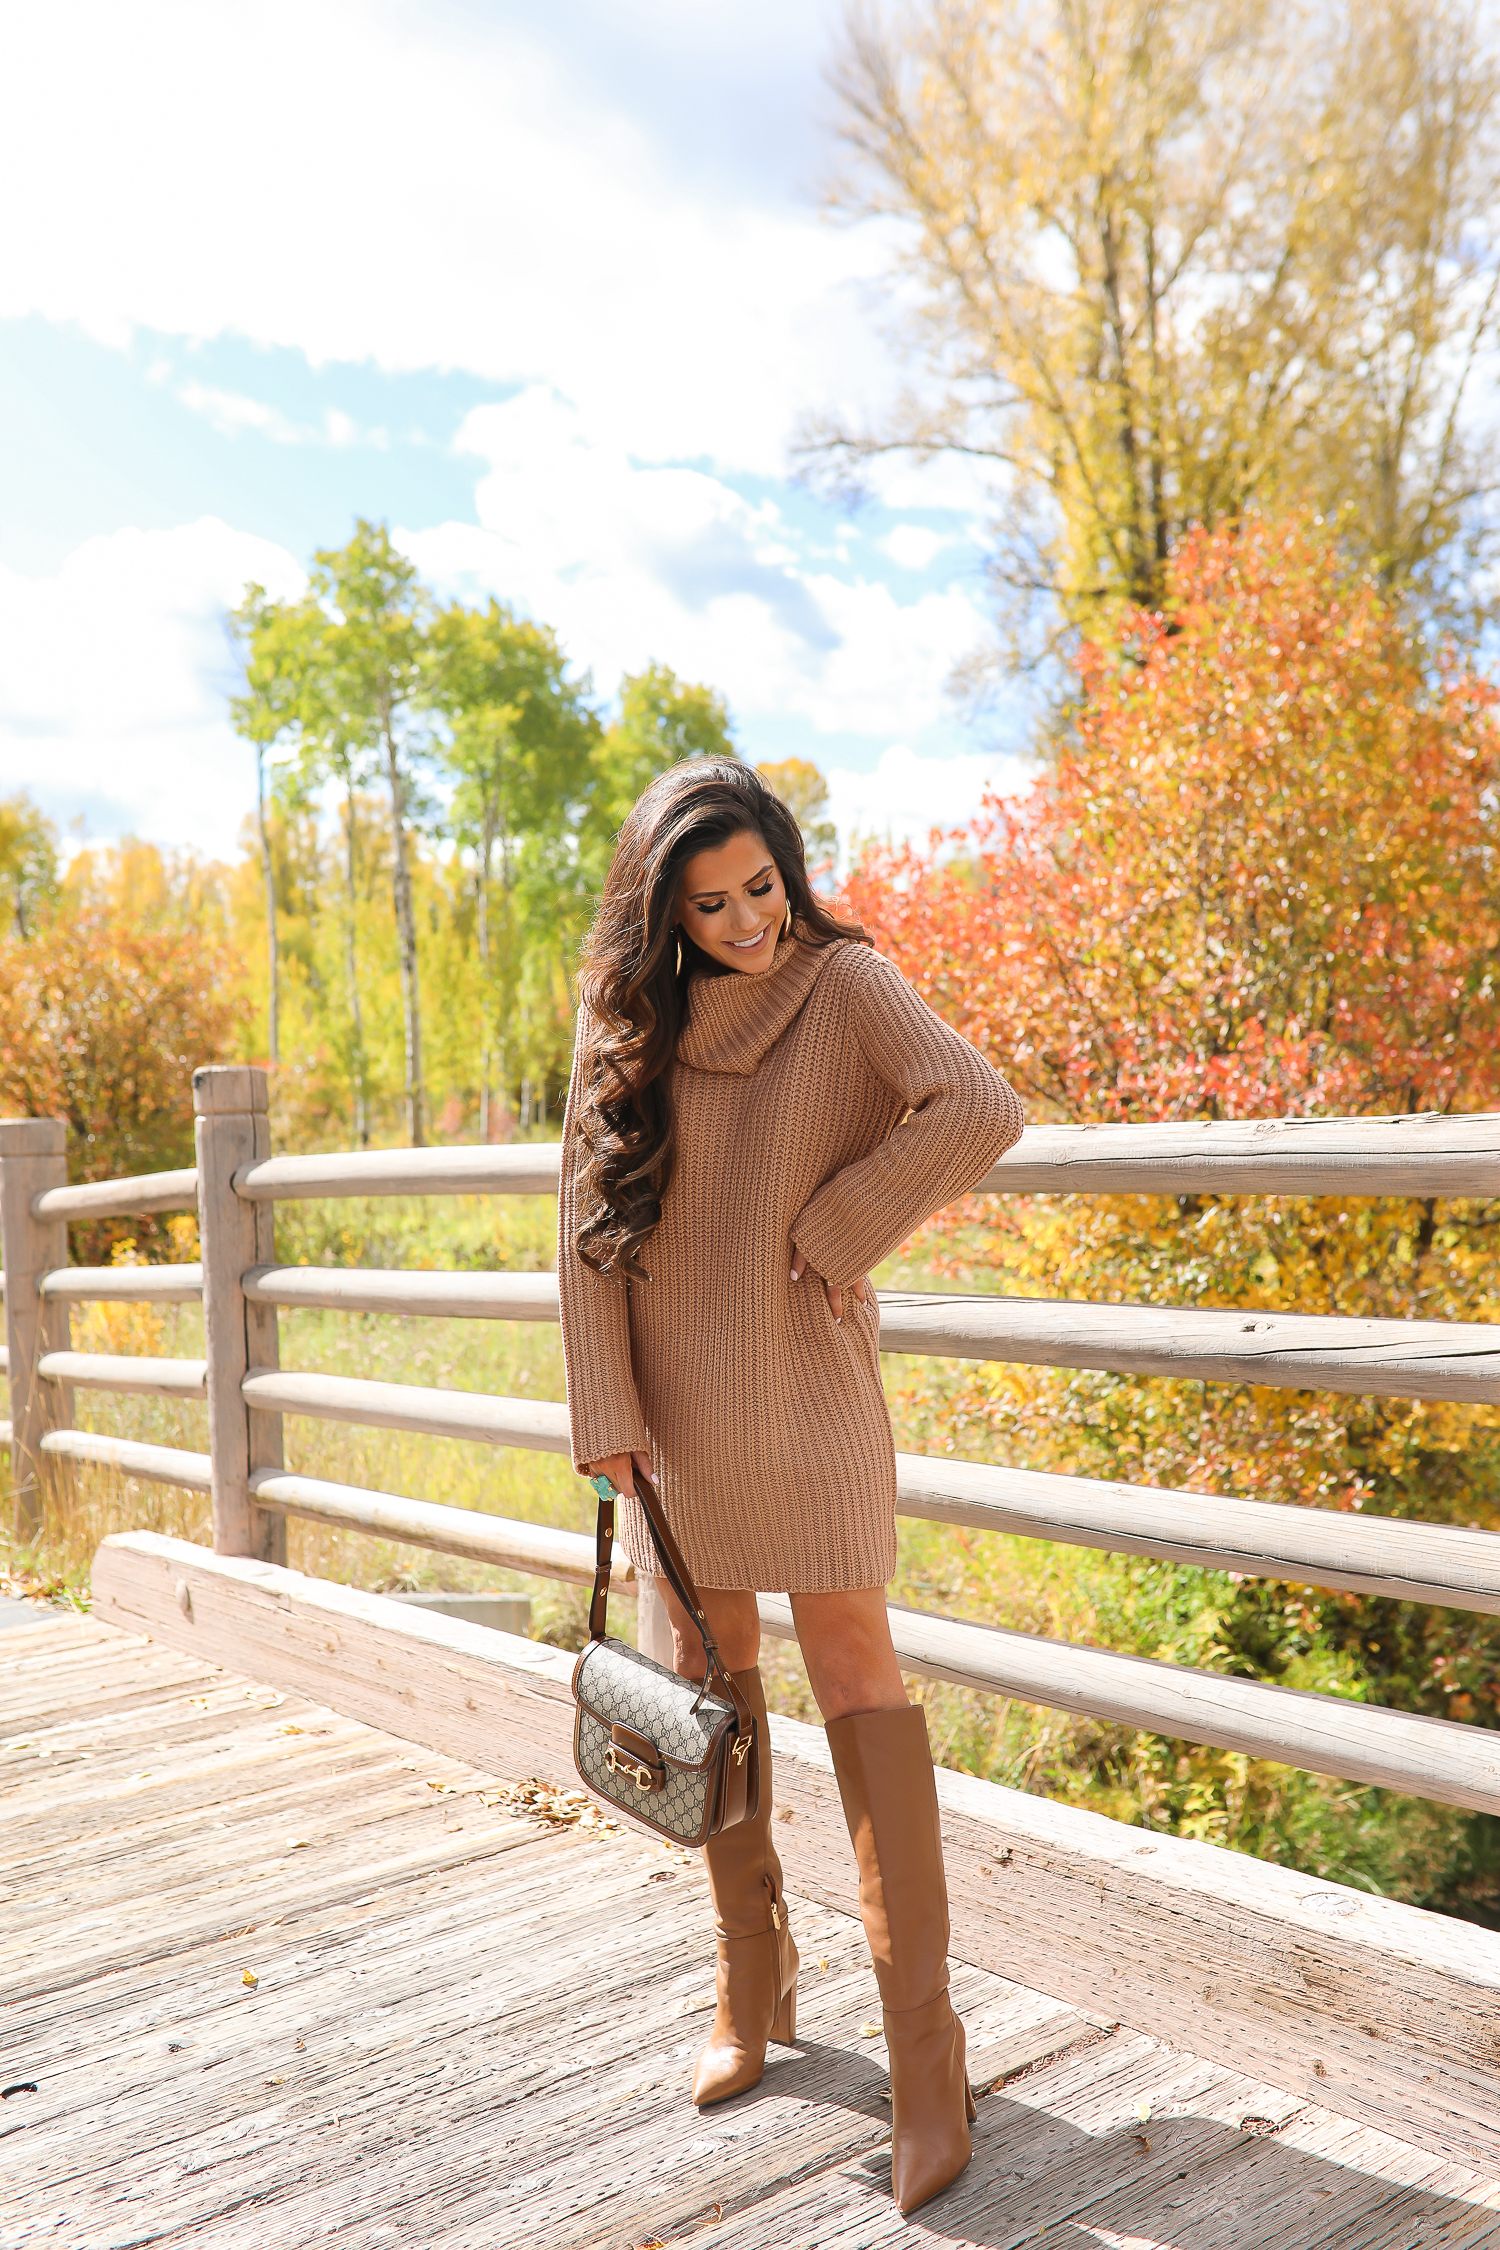 Camel Sweater Dress styled for Fall by top US fashion blog, The Sweetest Thing: image of a woman wearing a BB Dakota camel sweater dress, Sam Edelman boots, Gucci 1955 shoulder bag, Gucci sunglasses, Free People rings, and Argento Vivo earrings | fall fashion outfits pinterest 2019, gucci 1955 horsebit bag, sam edelman raakal boots, cute dresses leather boots pinterest fall fashion, emily ann gemma-2